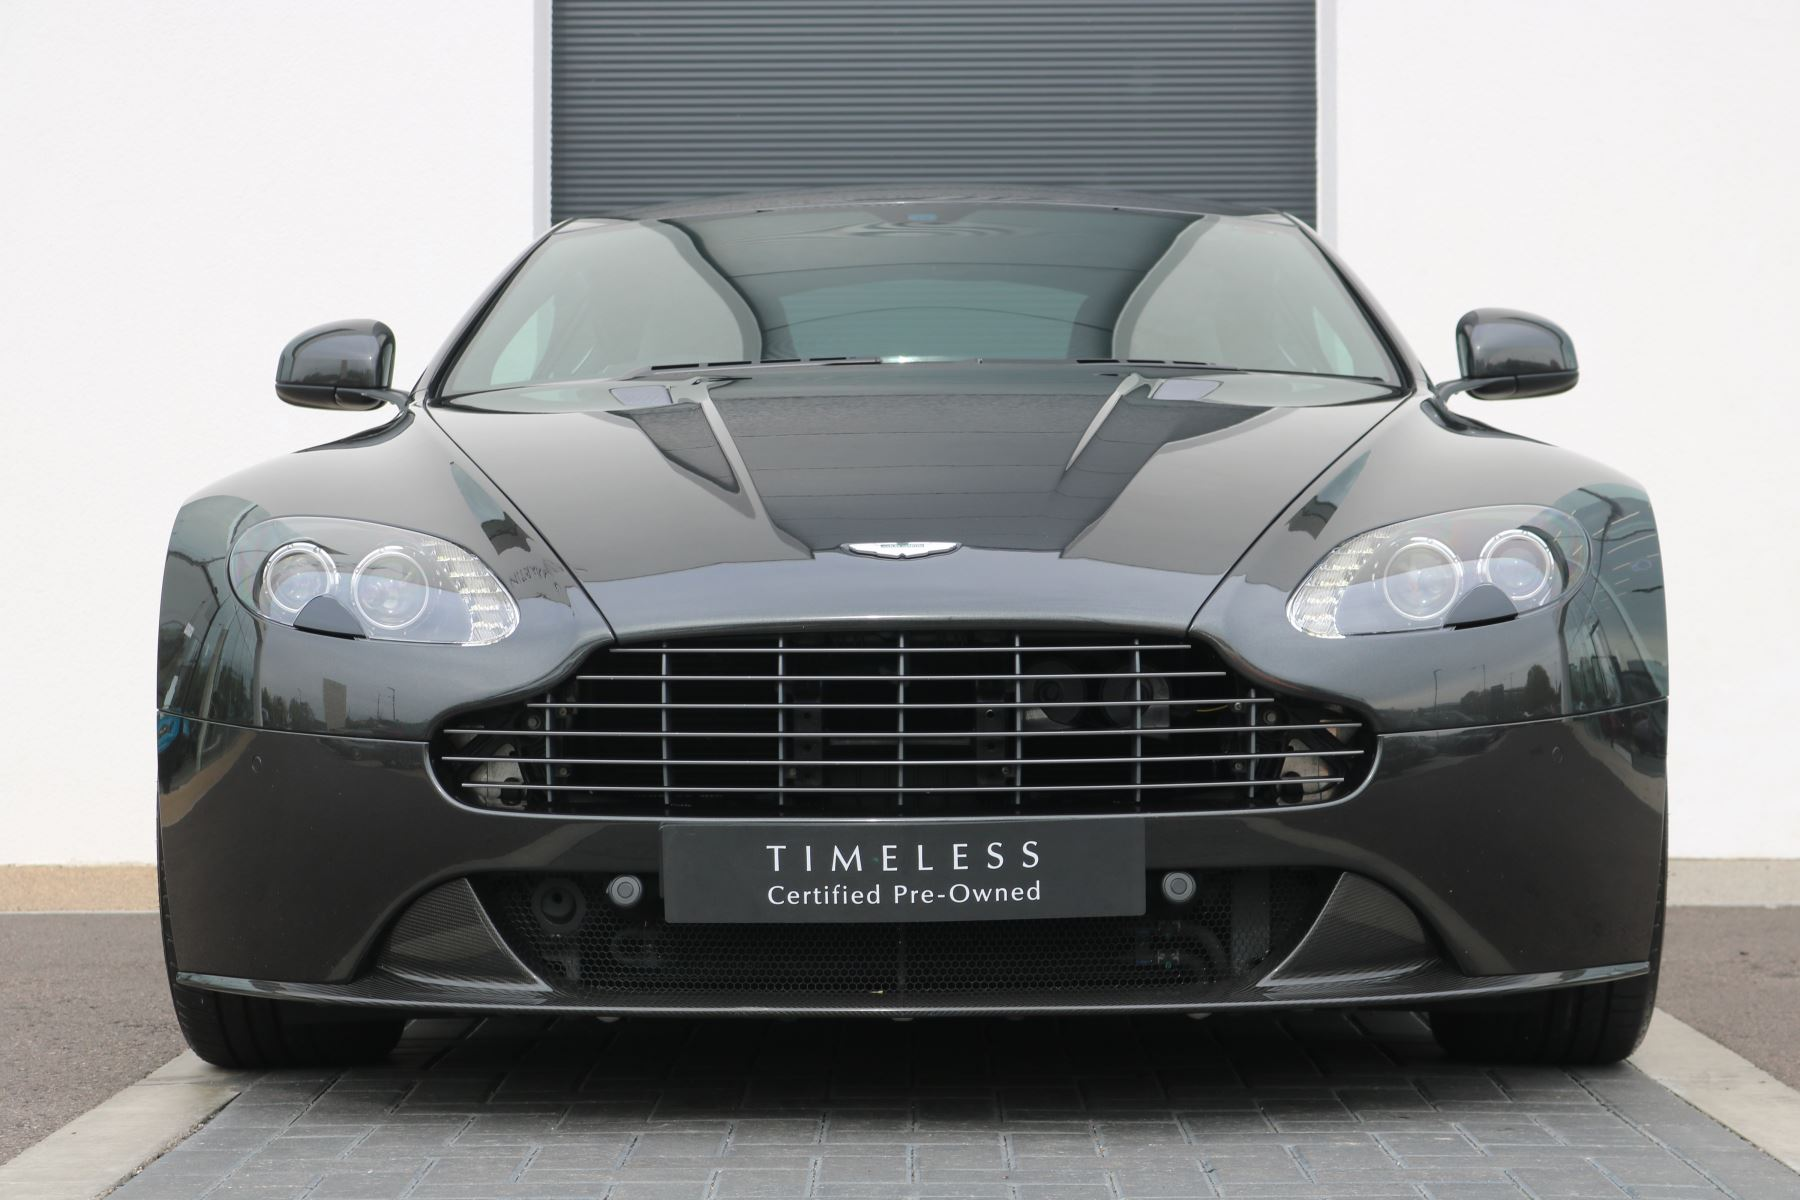 Aston Martin V8 Vantage SP10 S 2dr Sportshift 4.7 Automatic 3 door Coupe (2014) image